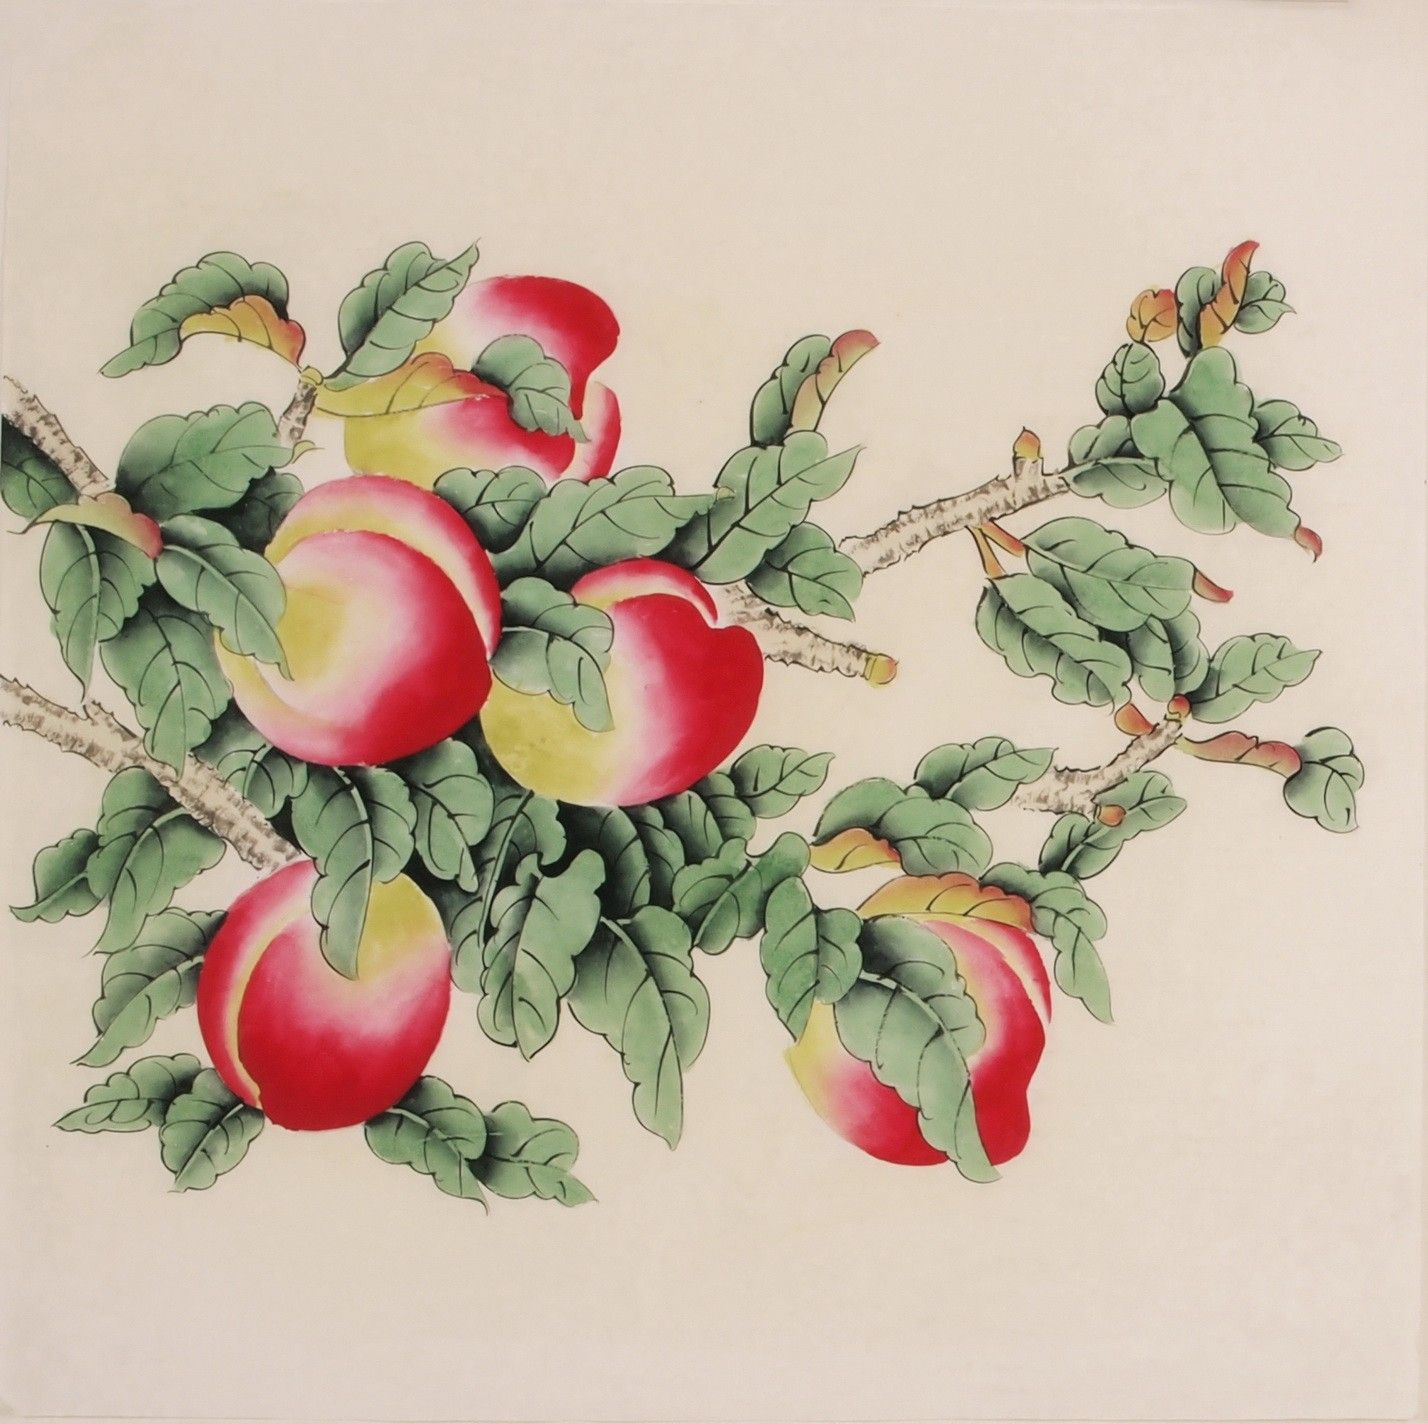 Peach blossom cnag005727 peach paintings and chinese painting chinese peach paintings buycottarizona Image collections